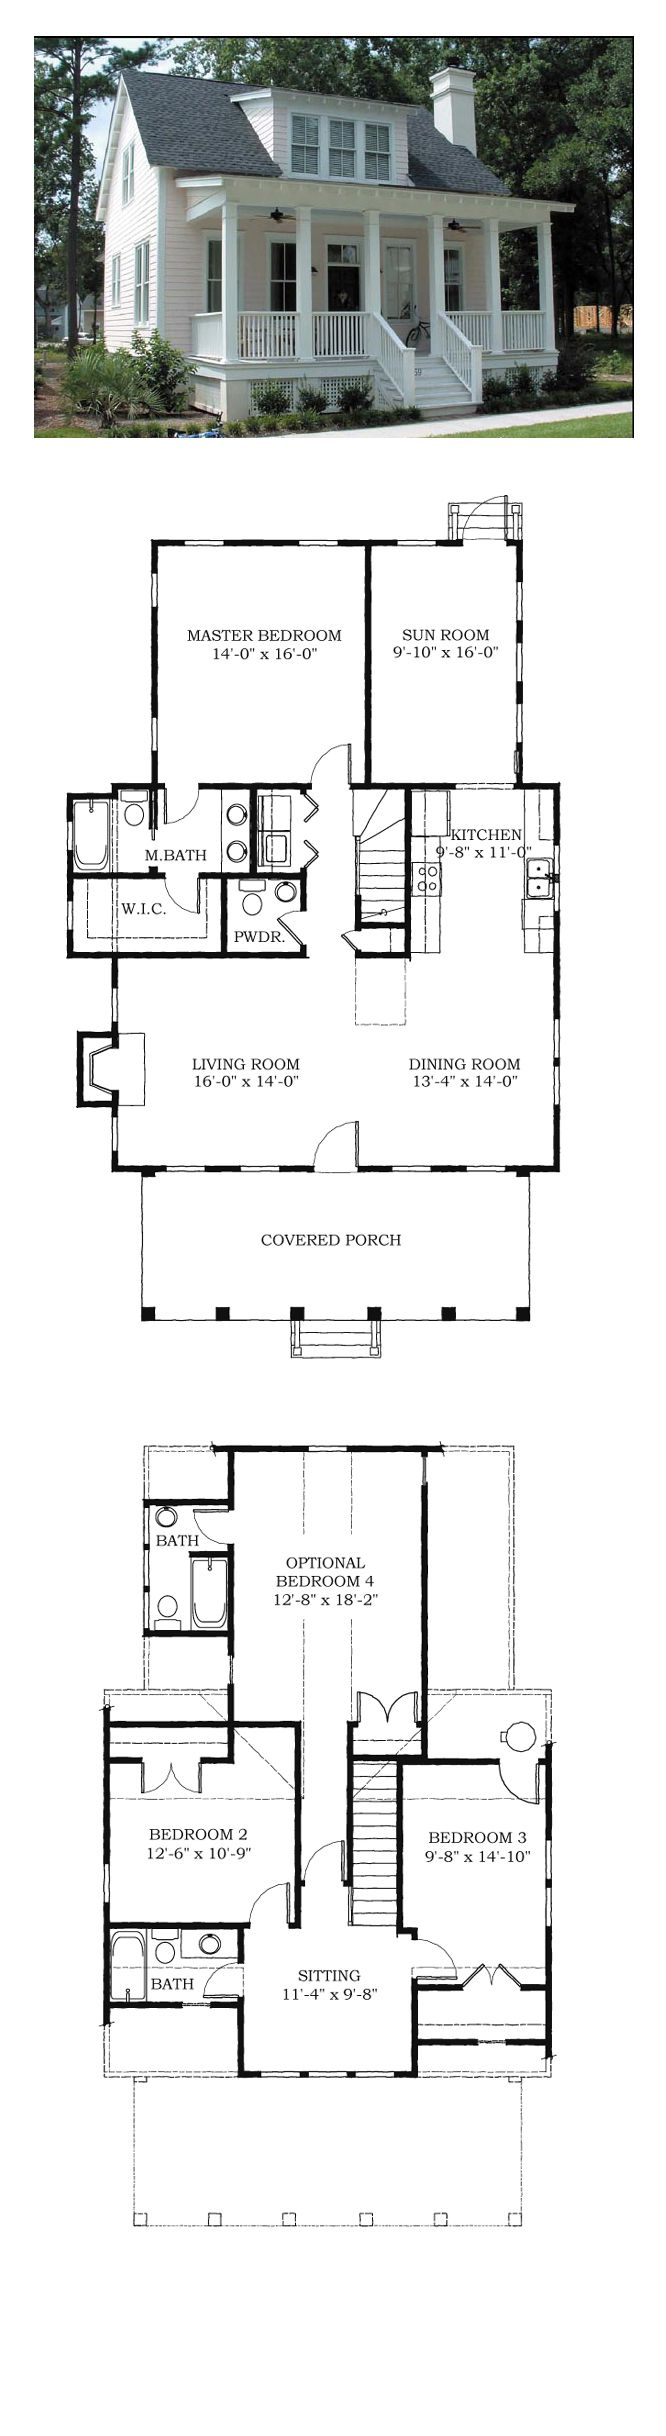 Cool House Plan Id Chp 38703 Total Living Area 1783 Sq